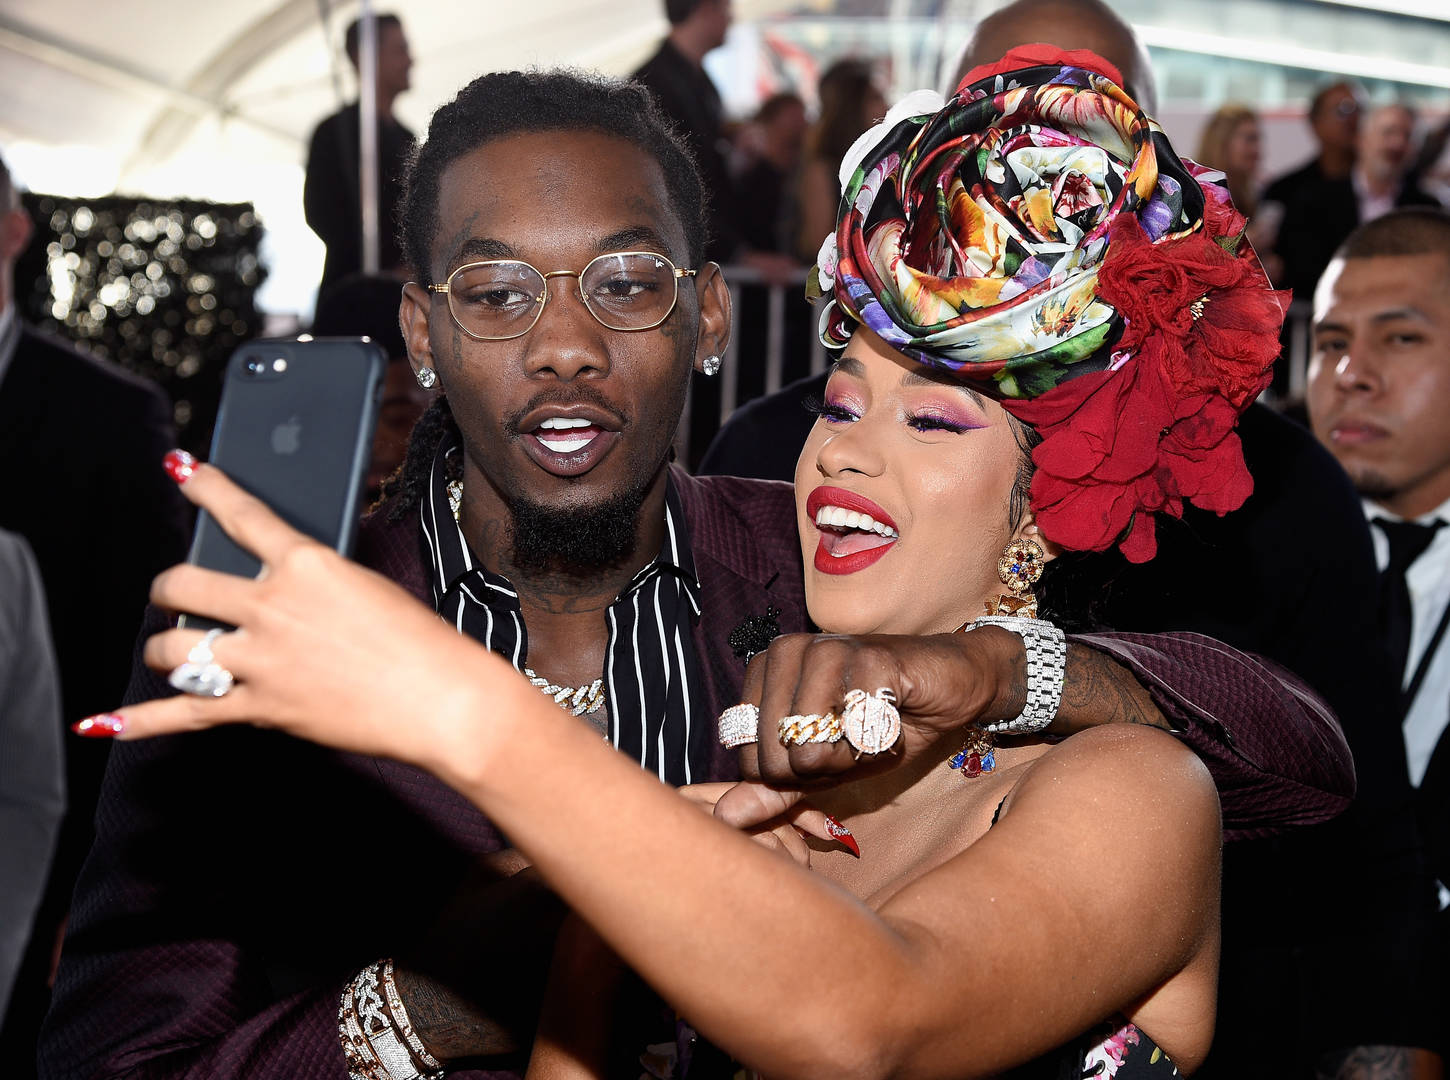 Offset Can't Keep Cardi B Out Of His Mouth In PDA Instagram Share